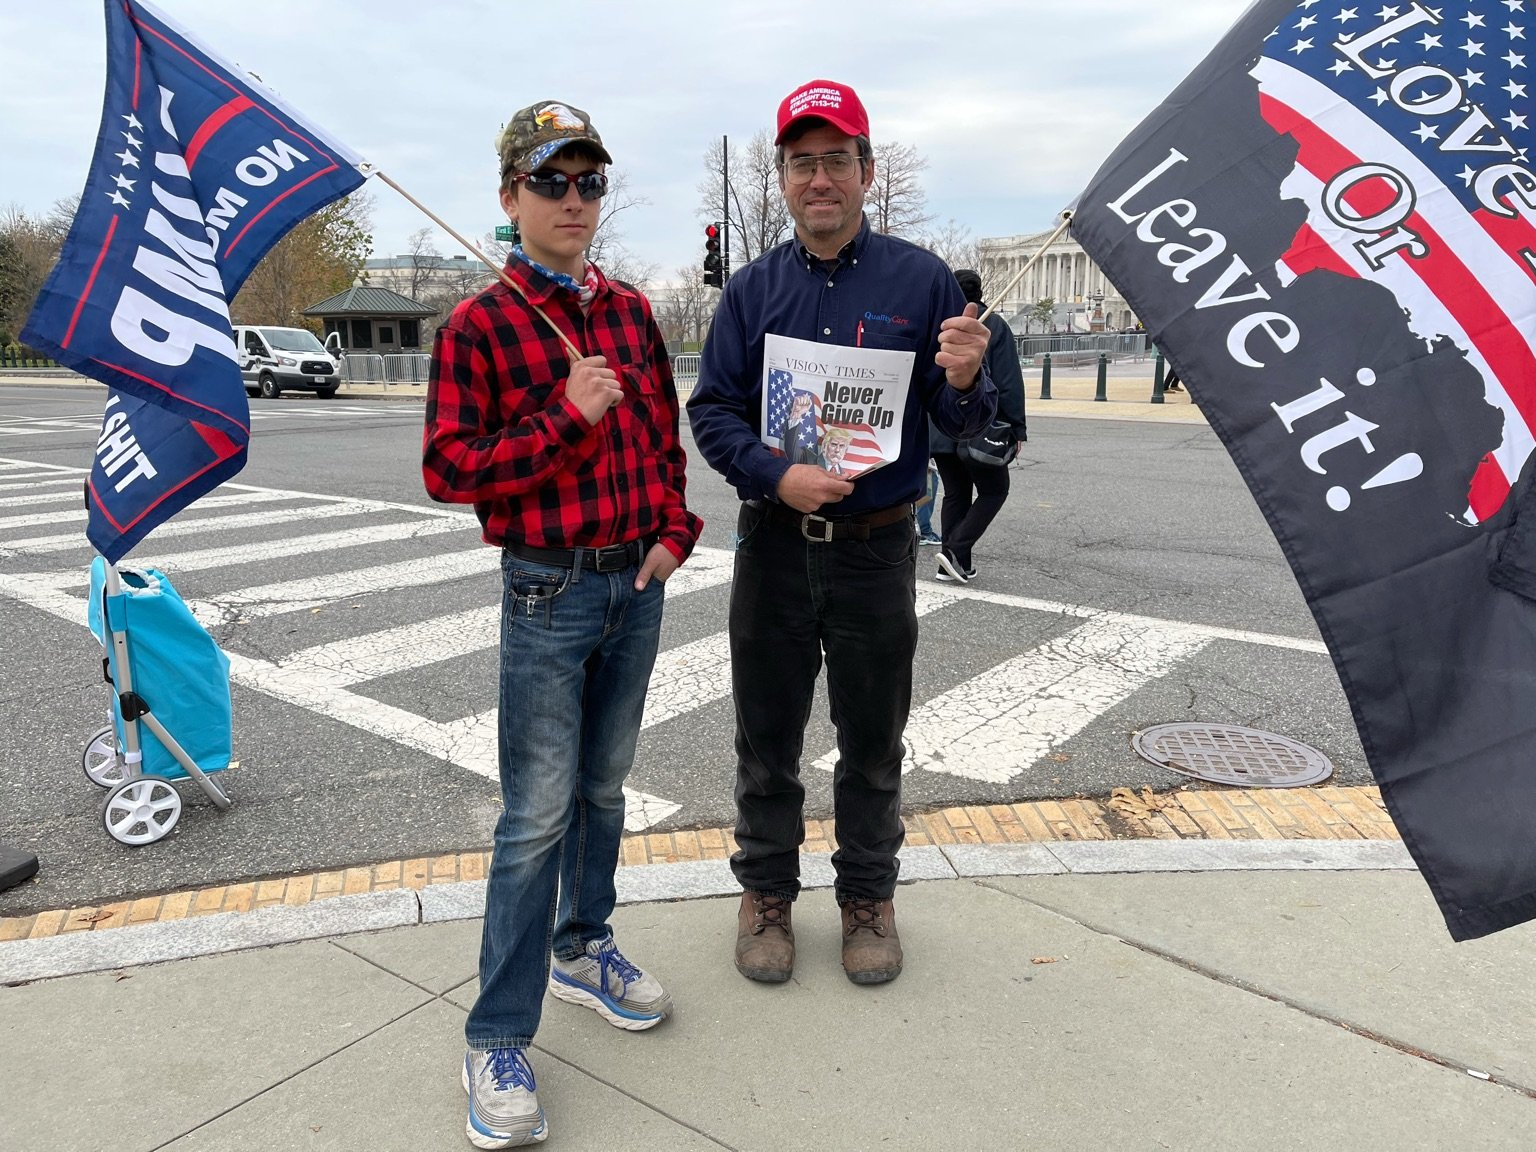 rally goers hold Vision Times Special Edition